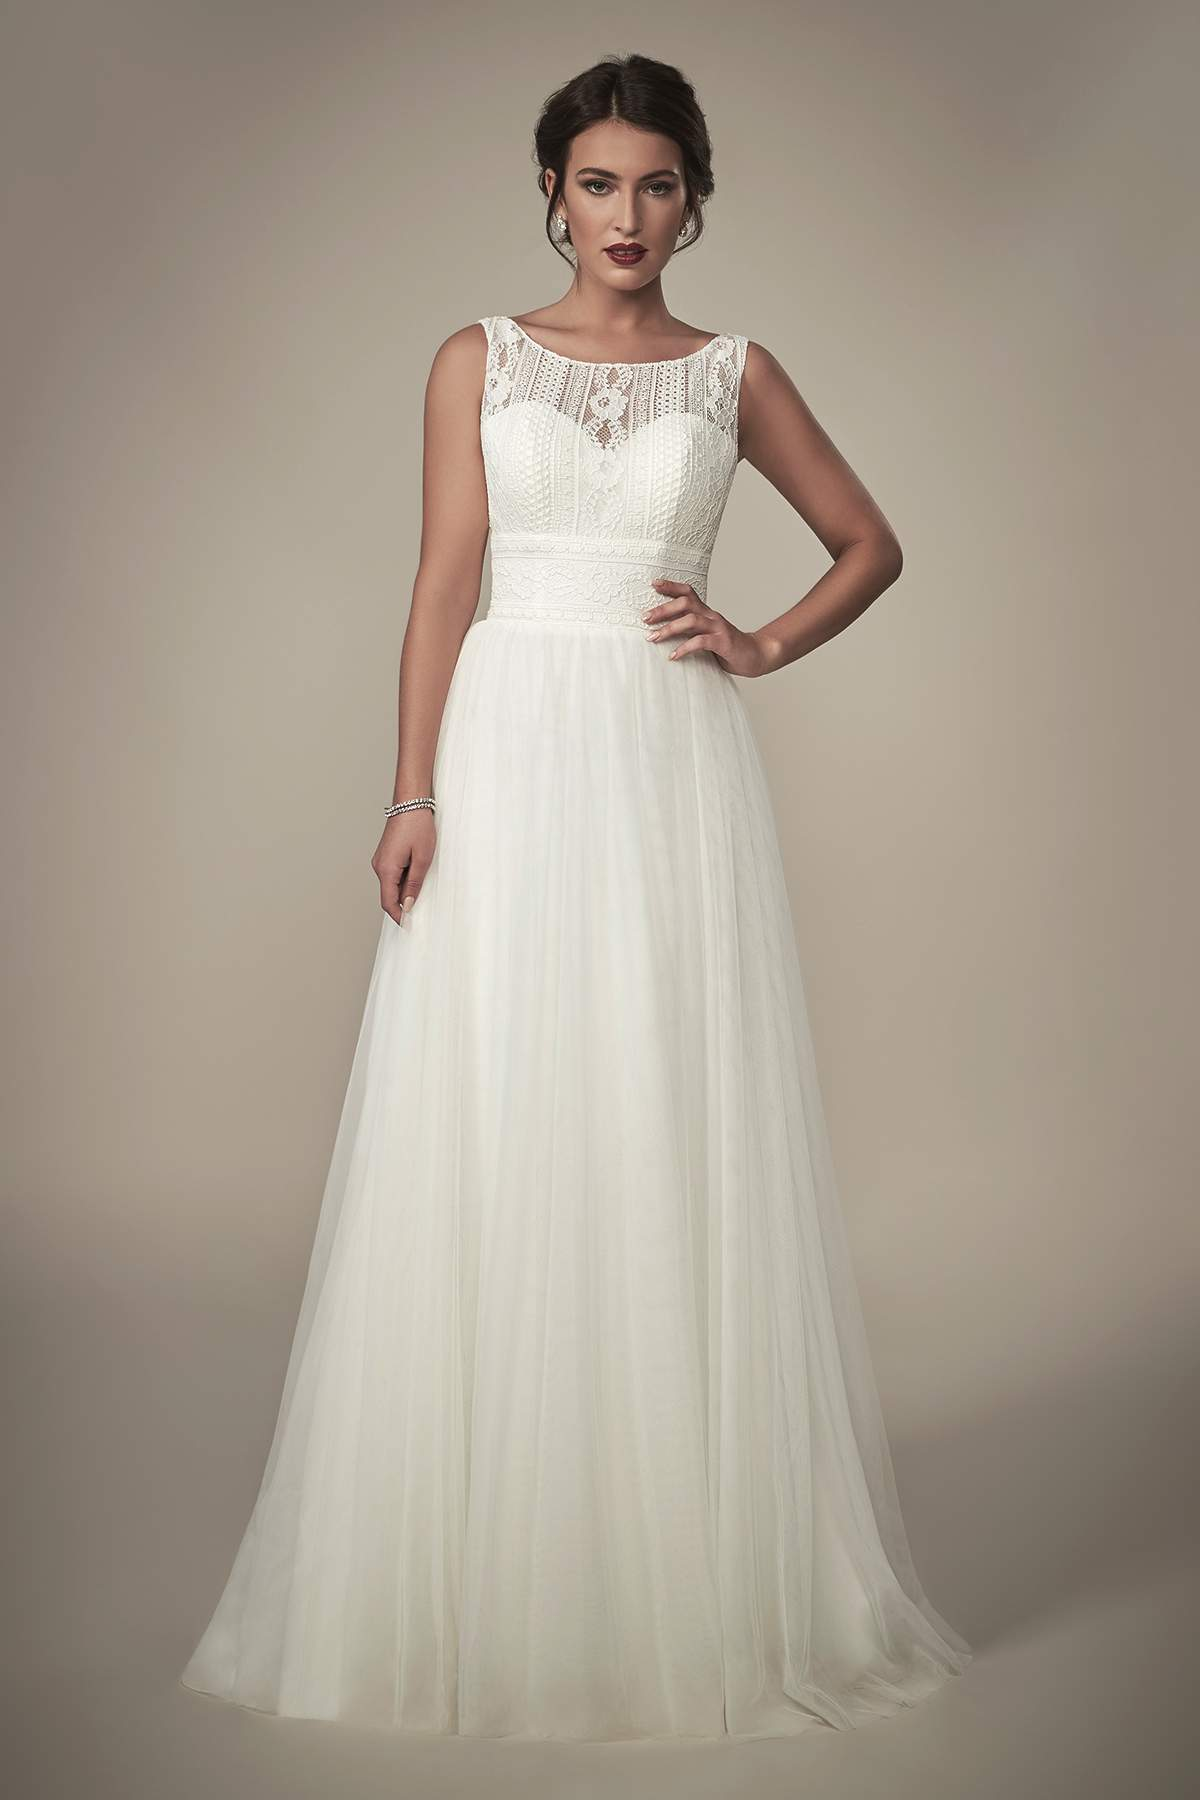 Style PC7925 by Phil Collins - Find Your Dream Dress